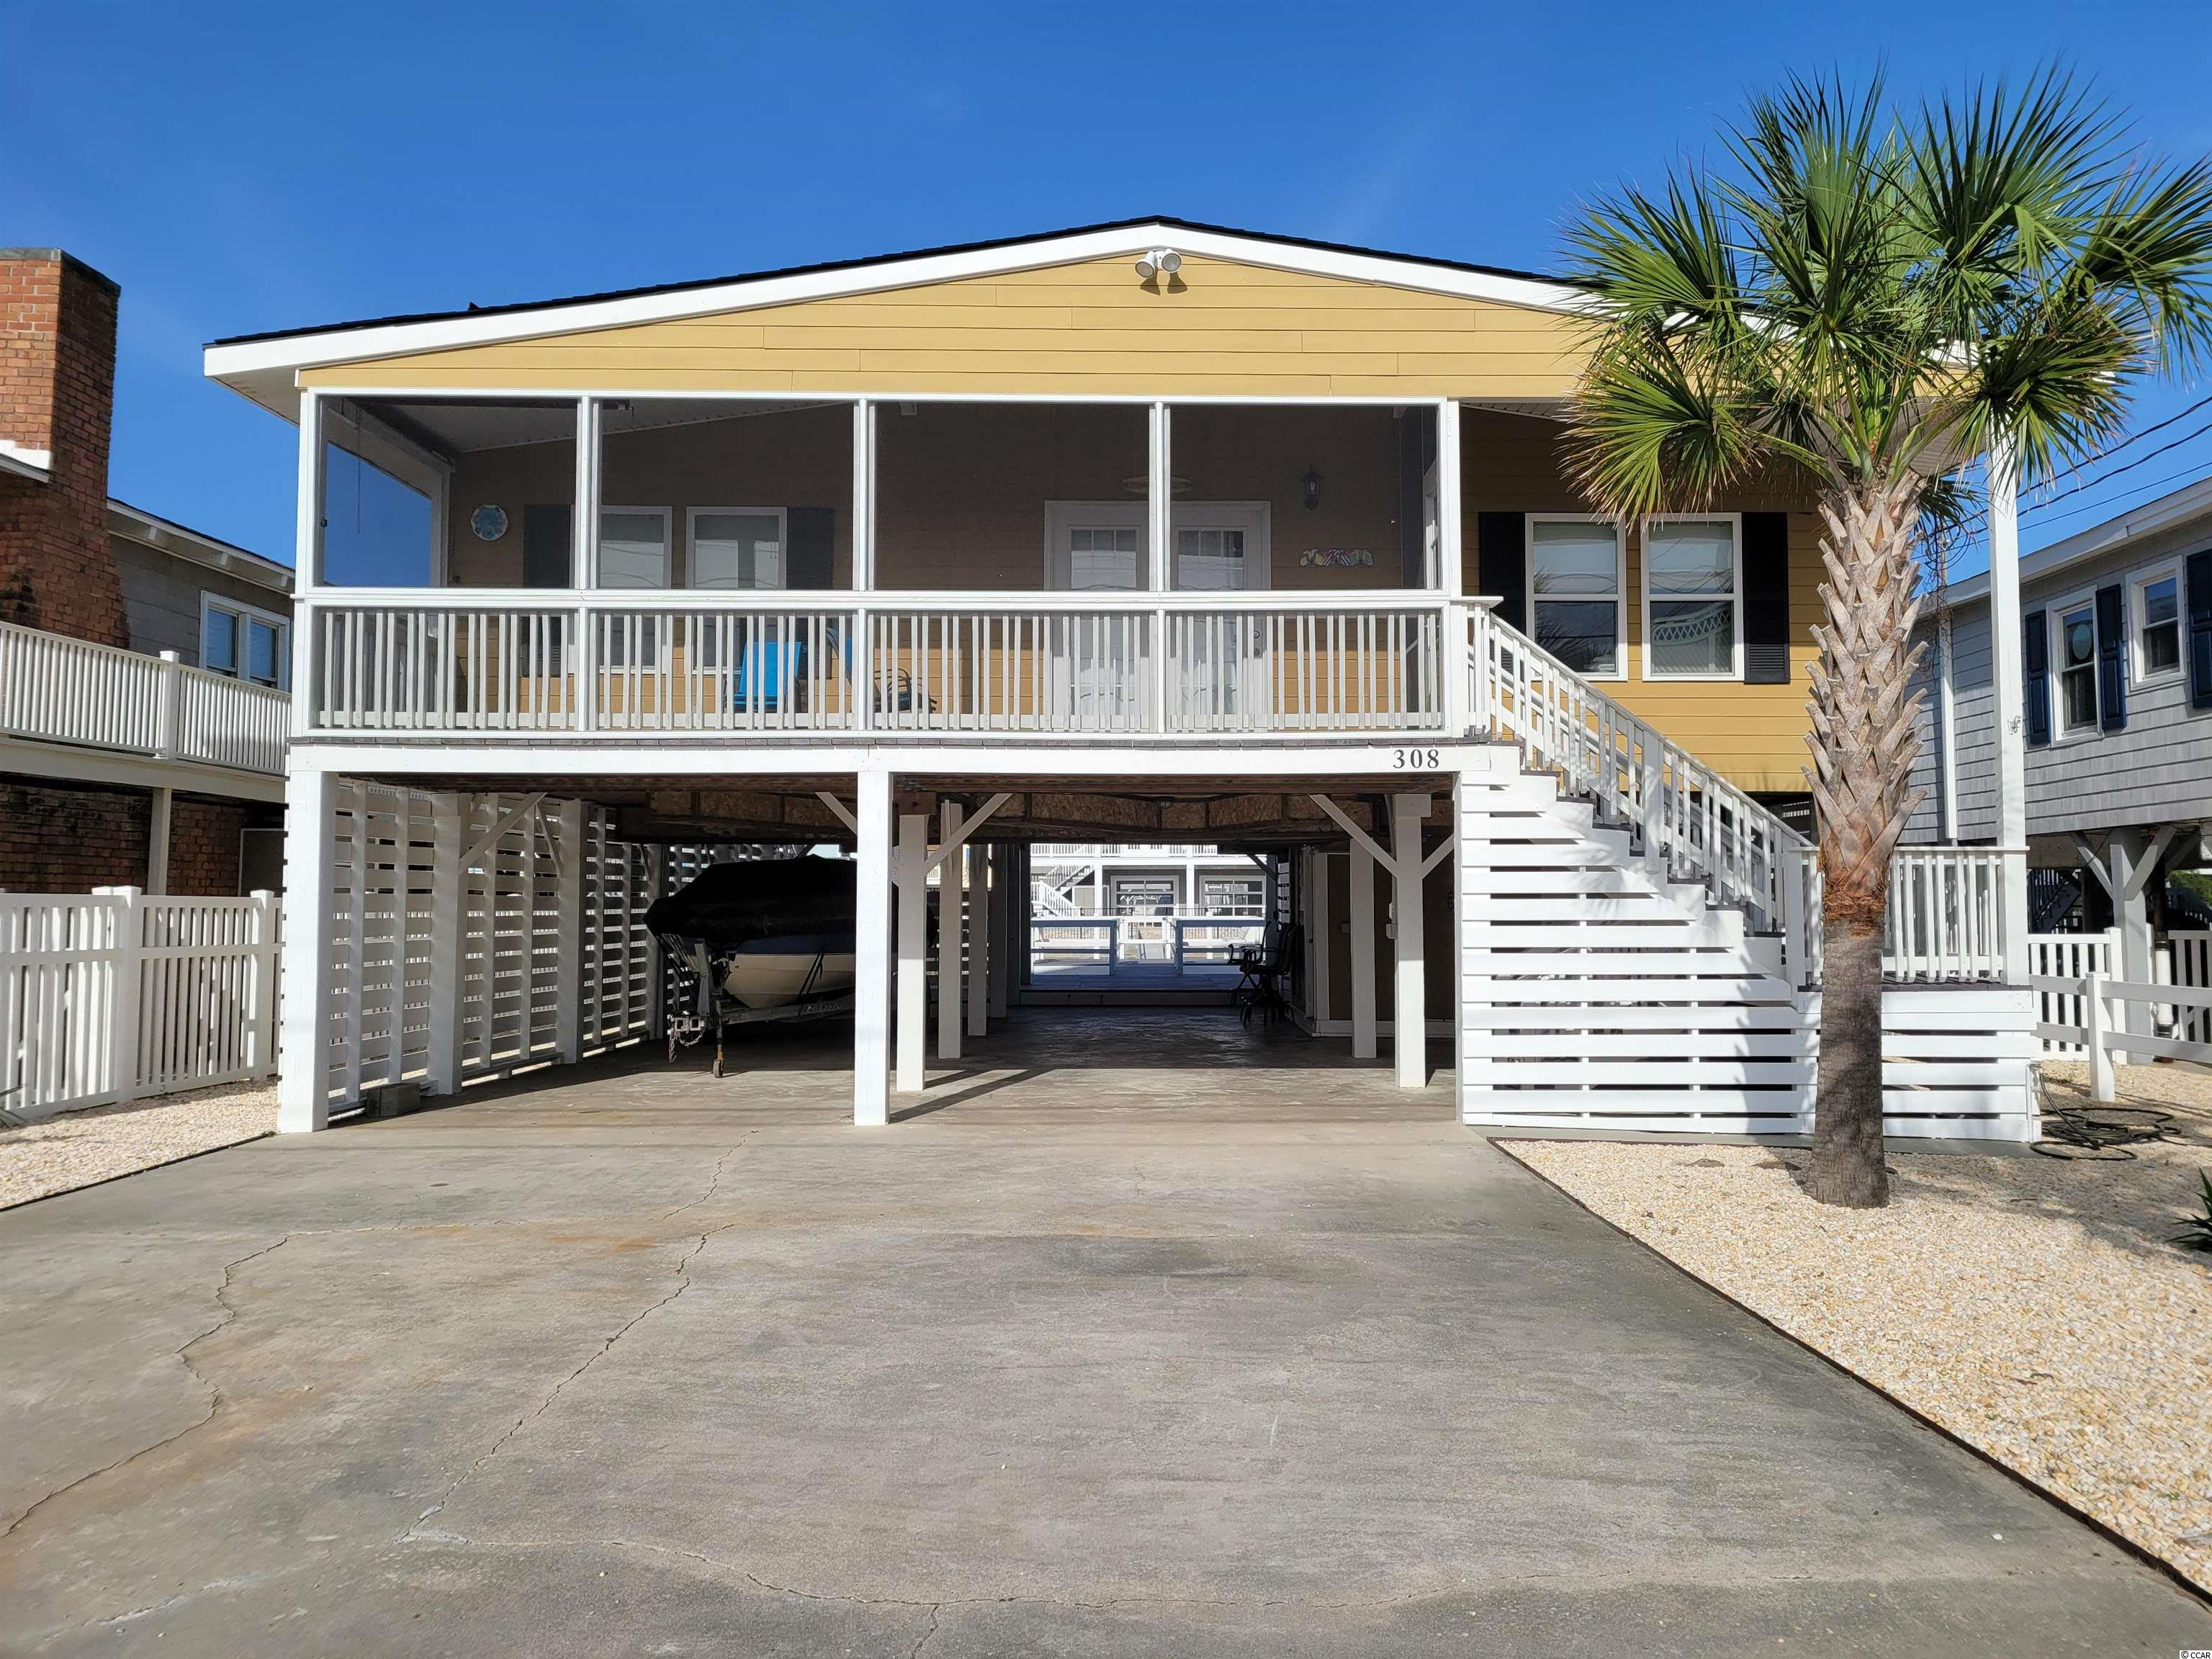 This beautiful 4 bedroom, 2 bath raised beach home on deep channel with spacious deck, patio areas offering lovely views of the channel and marsh beyond.  Delightful screened front porch extends across the front of home and has really great view of marsh.  Entering into roomy family room, inviting dining area and kitchen area with sliding door to Very Large deck overlooking channel!.  HVAC, water heater, roof and most appliances new in 2013.  Never on rental program and only 3 owners!